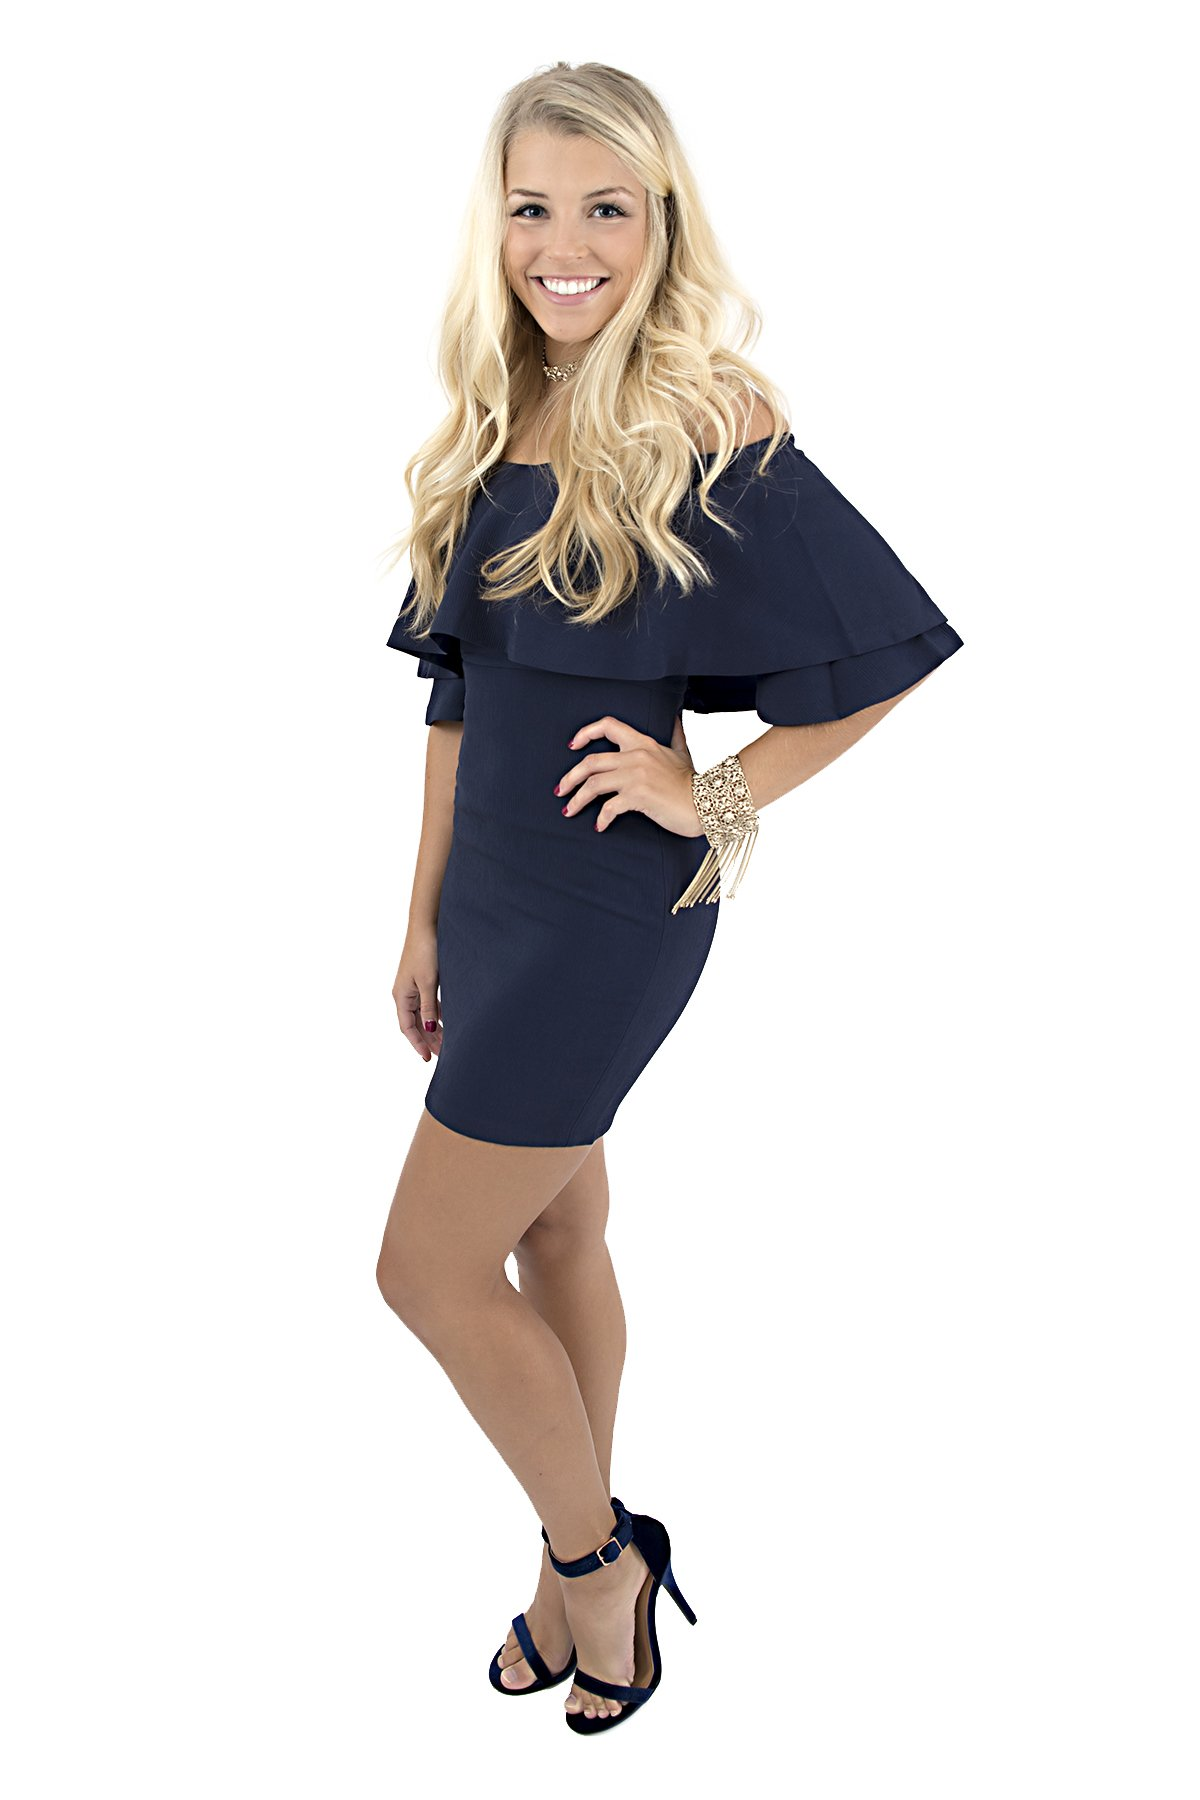 c5d1ca8c78a9 This dynamite mini dress is the perfect combination of trendy and classic!  Features a ruffle